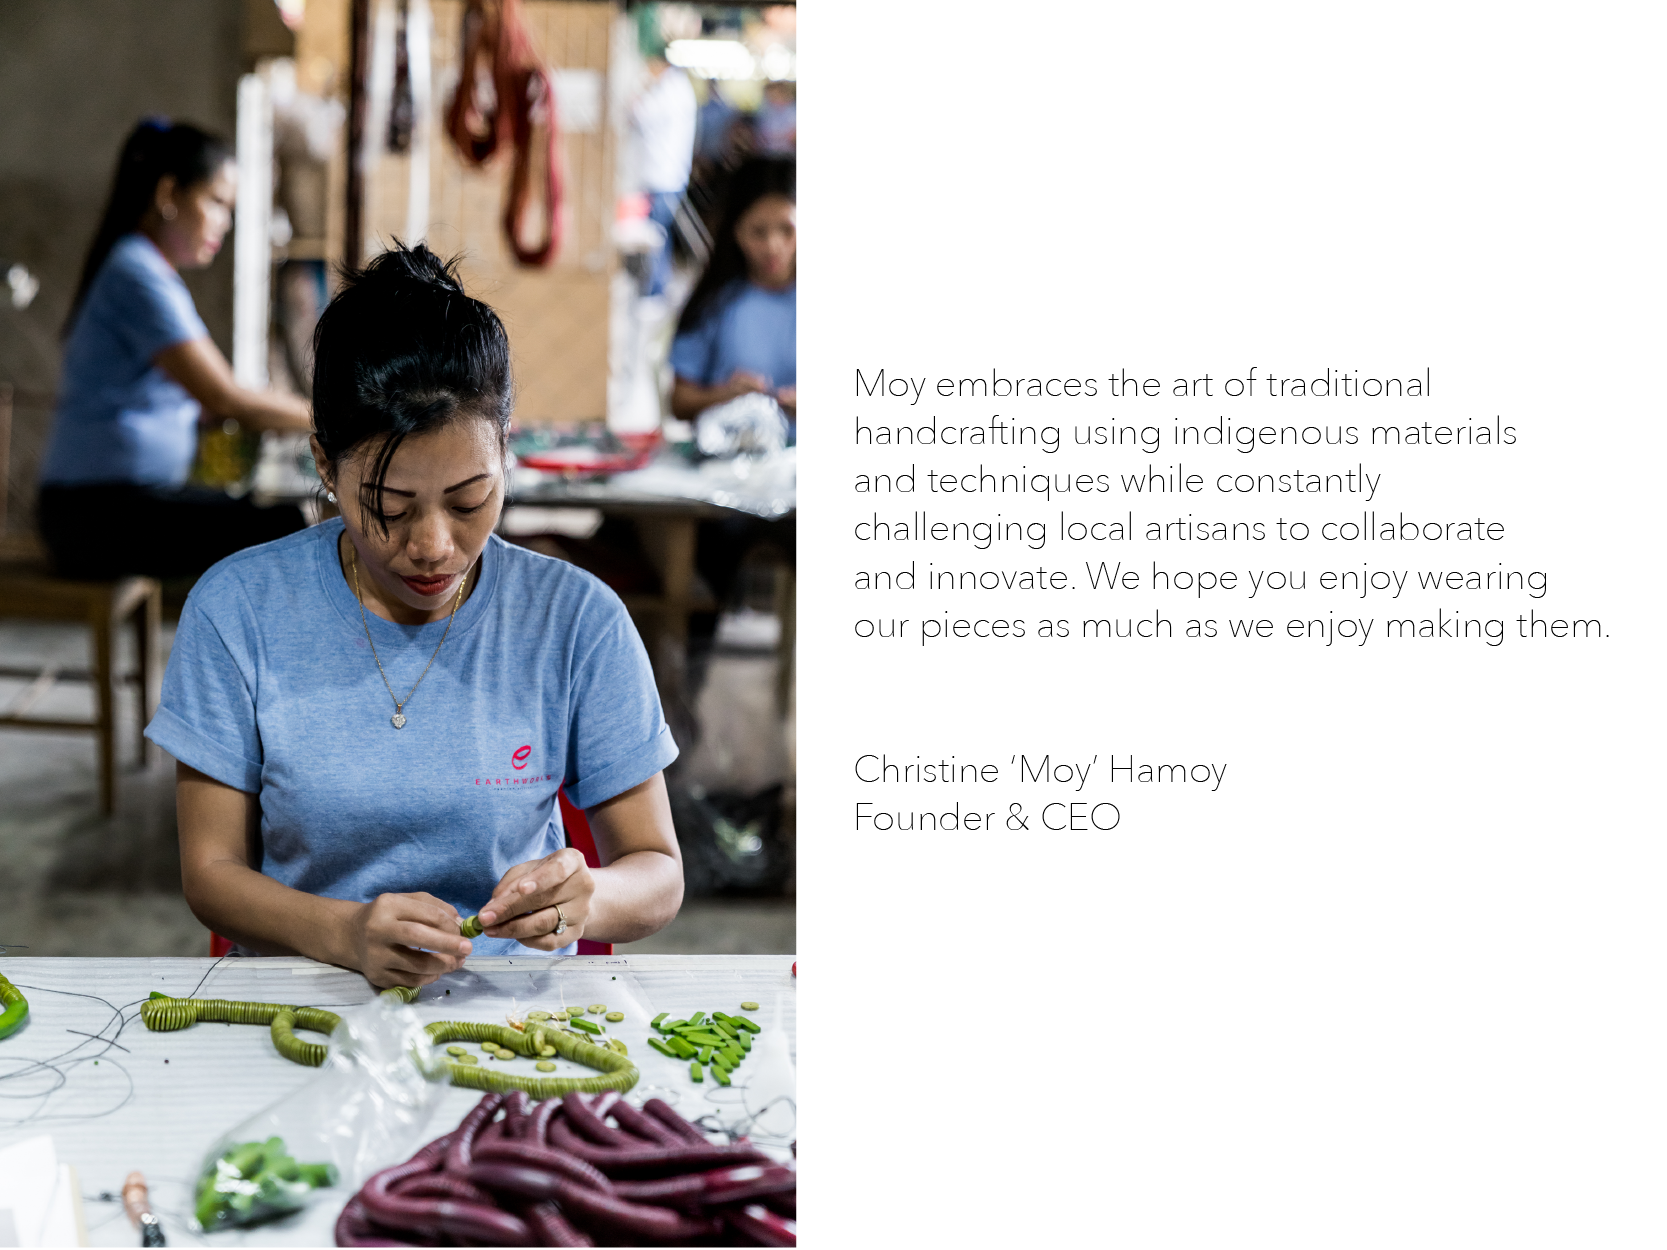 Moy embraces the art of traditional    handcrafting using indigenous materials    and techniques while constantly    challenging local artisans to collaborate    and innovate. We hope you enjoy wearing    our pieces as much as we enjoy making them.